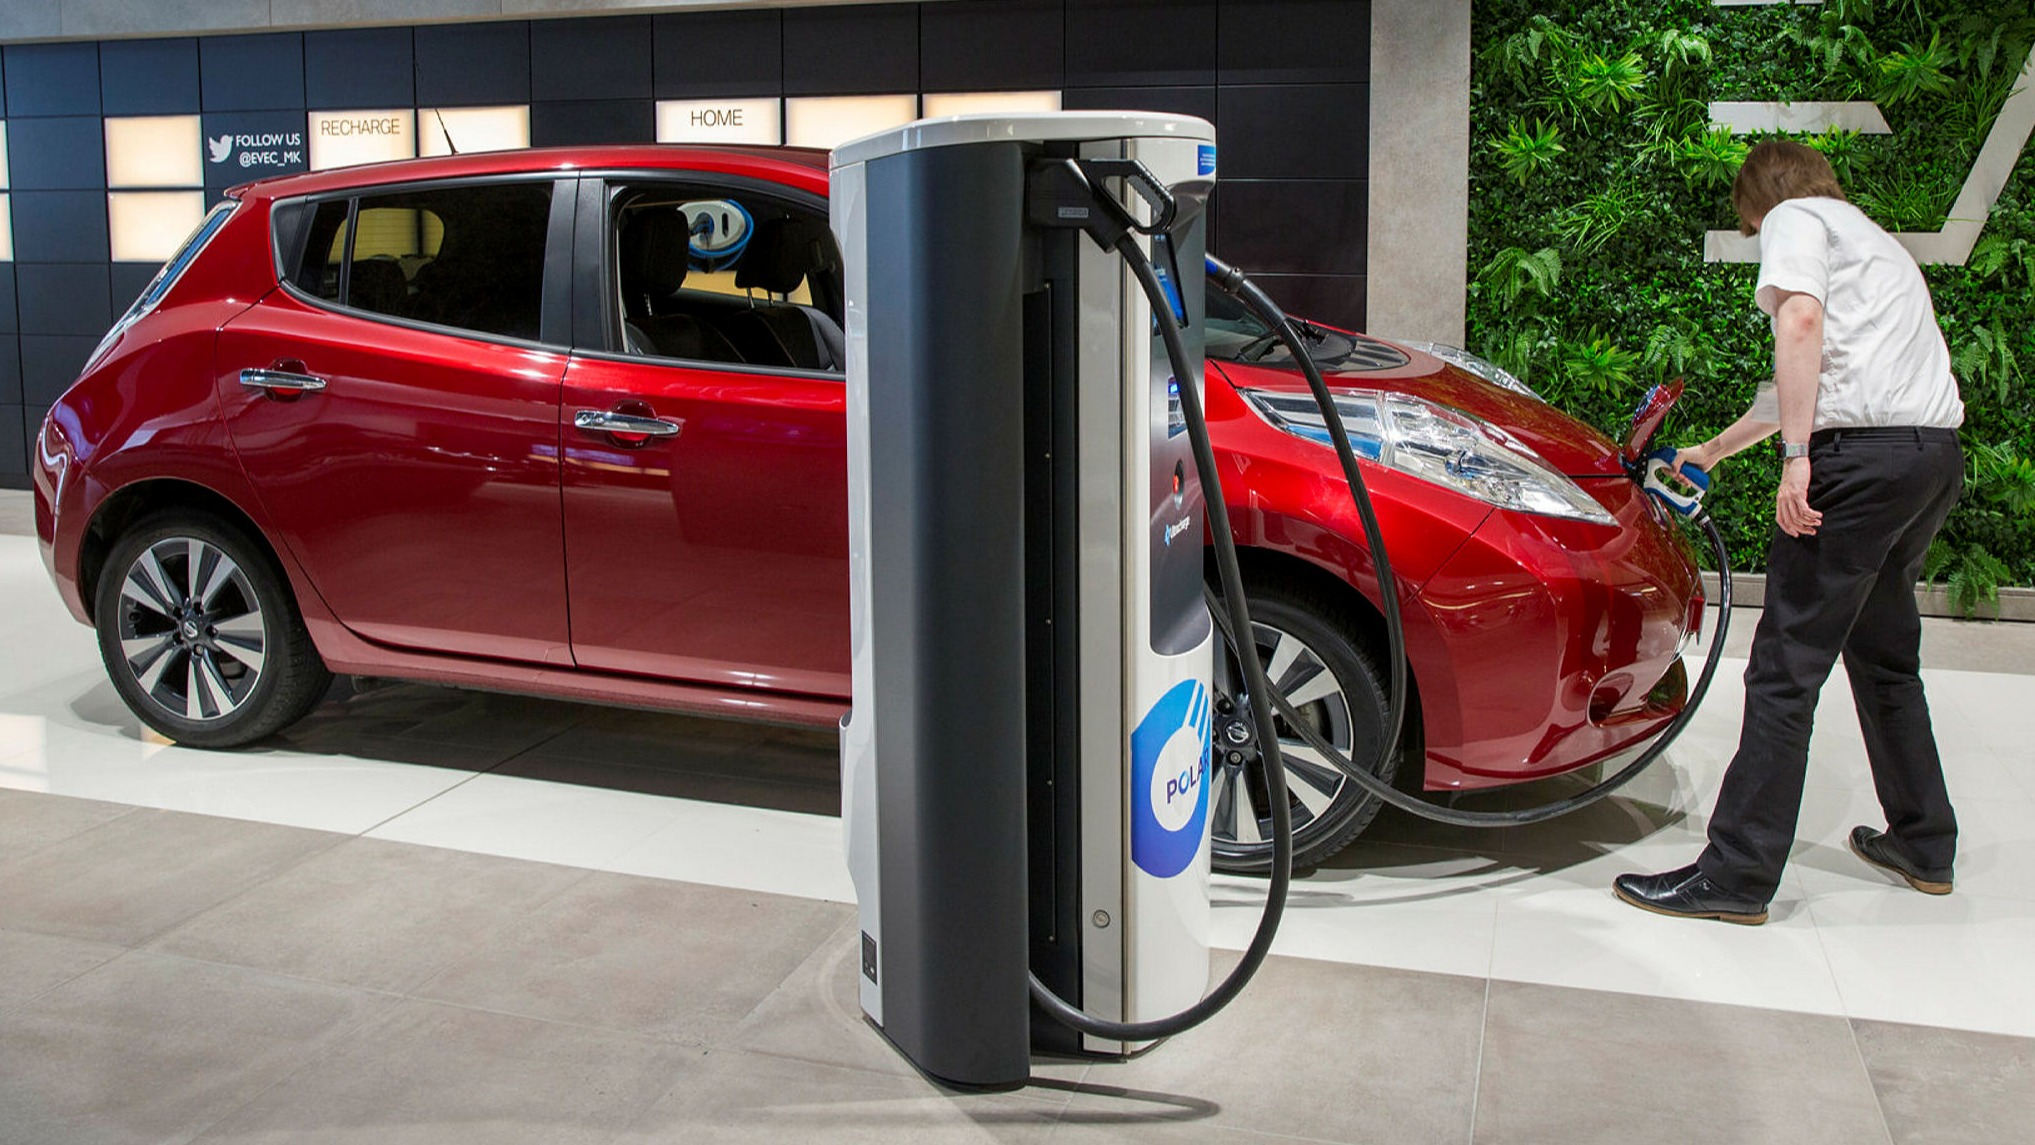 Appetite for electric cars in UK wanes as pandemic squeezes finances |  Financial Times